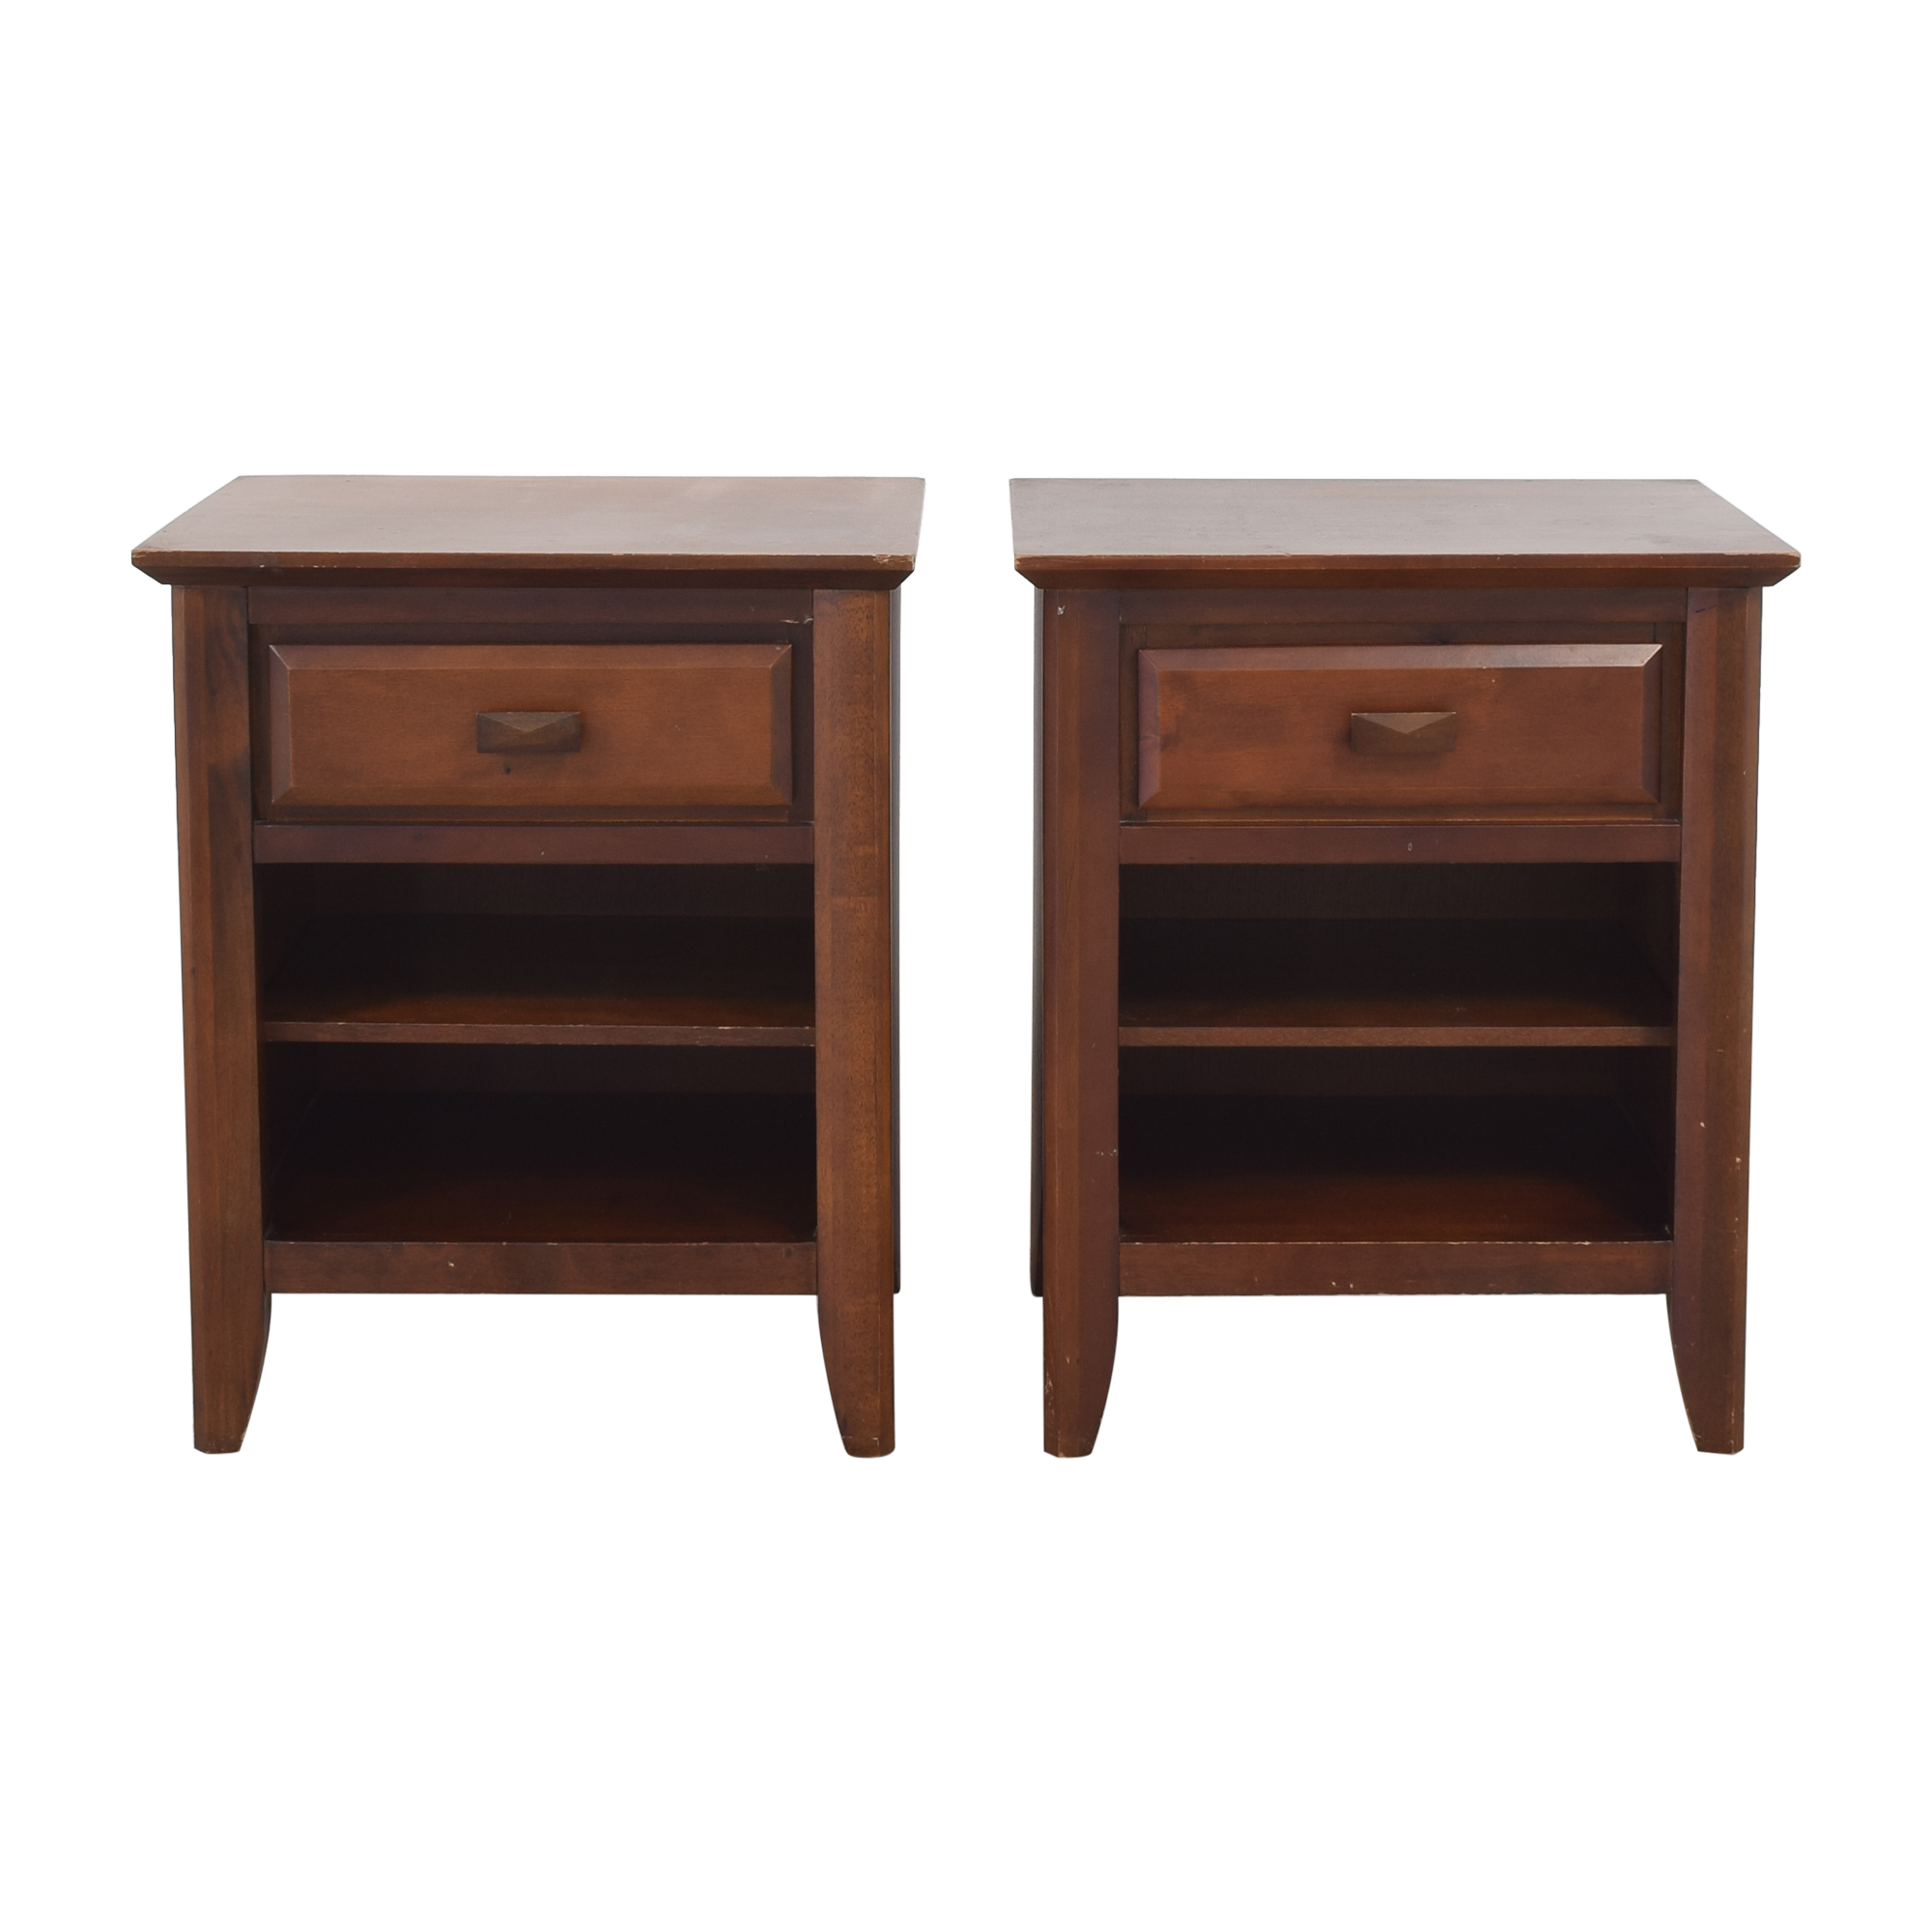 Z Gallerie Z Gallerie Night Stands with Storage End Tables